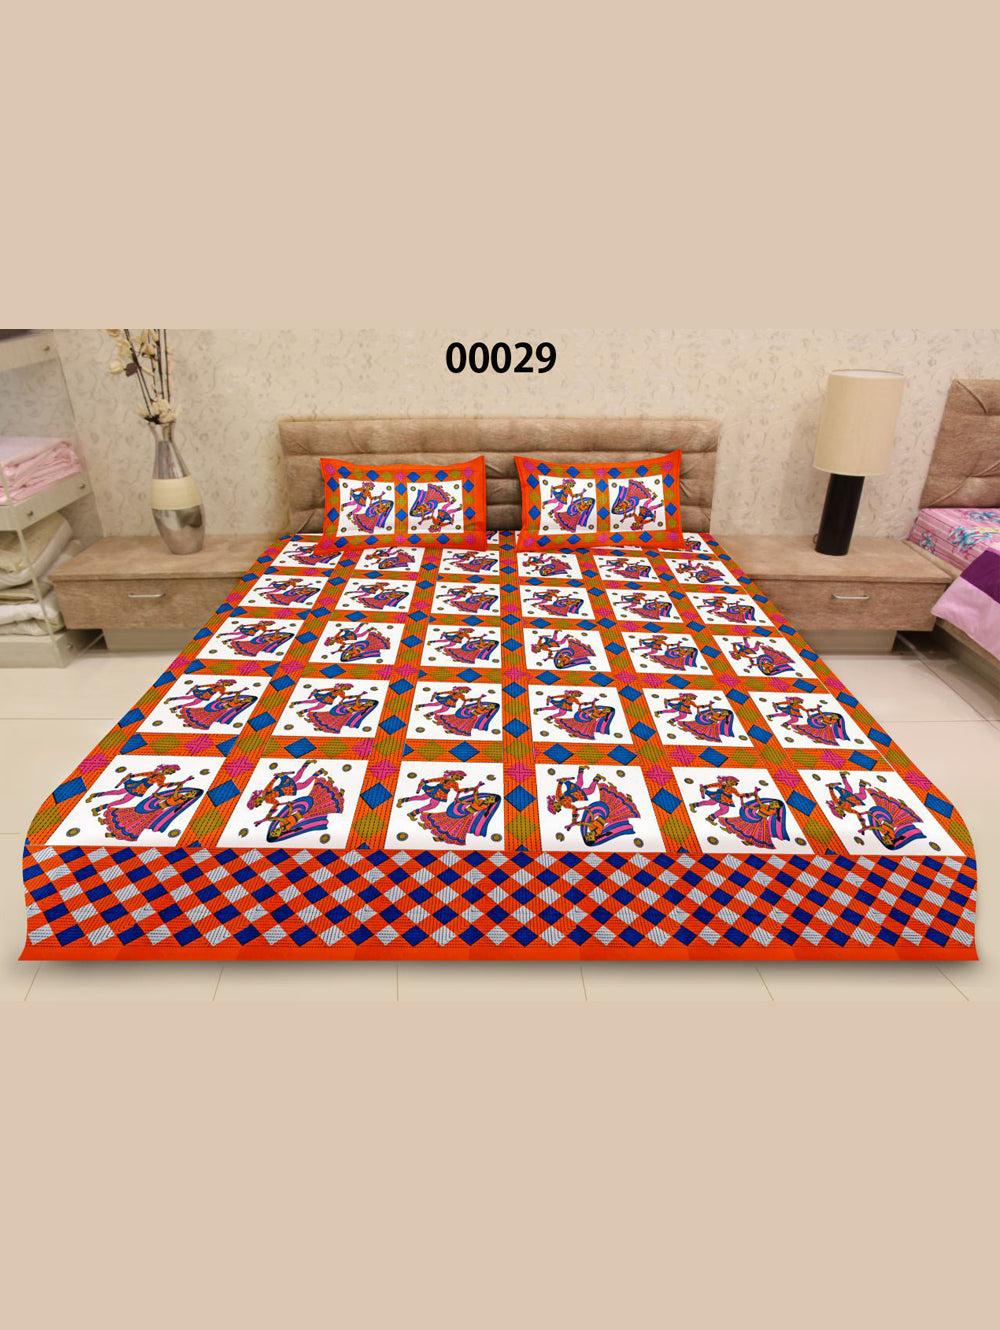 00029DarkOrange and Multicolour Traditional Cotton Queen Size Bedsheet With 2 Pillow Covers